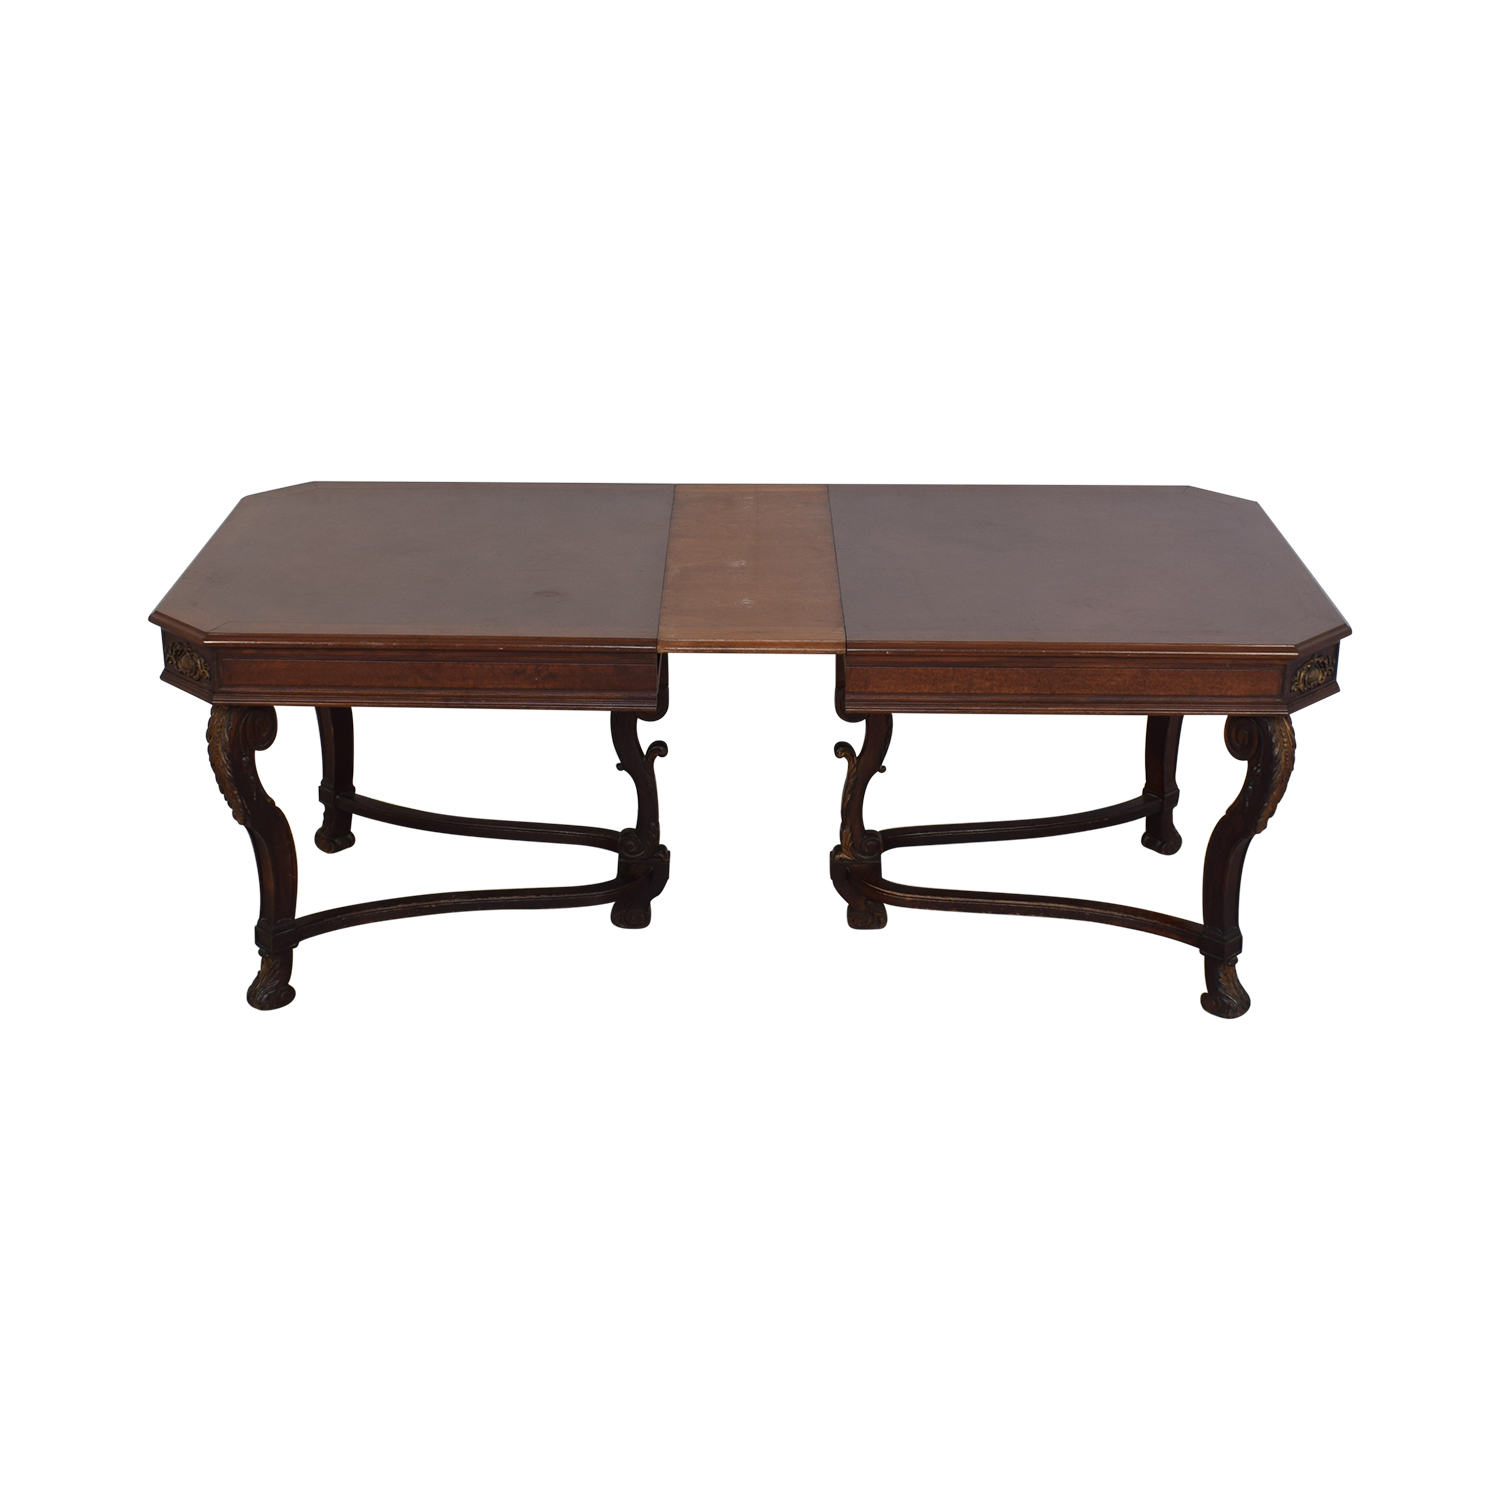 Antique Dining Table / Dinner Tables